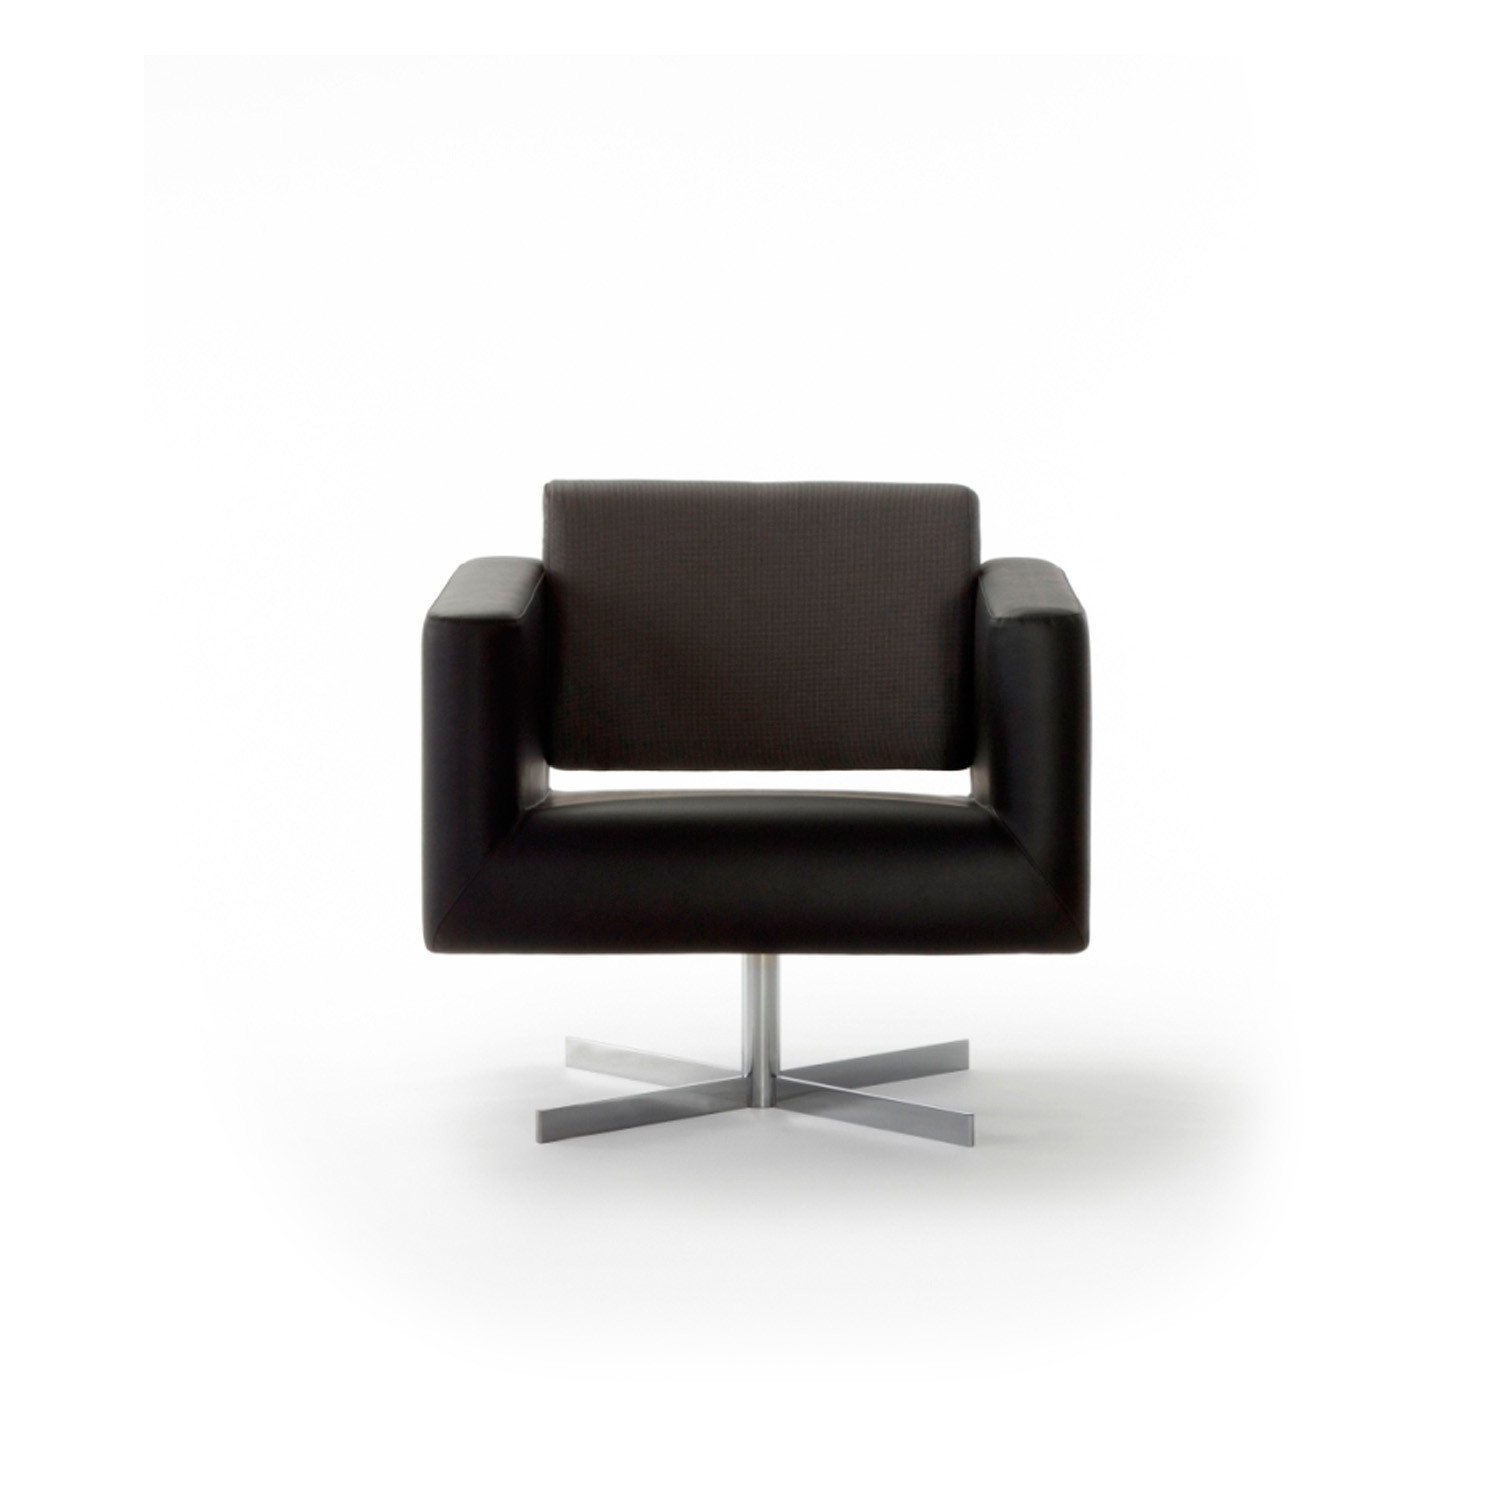 Orbis Armchair with 4-Star Base by Connection